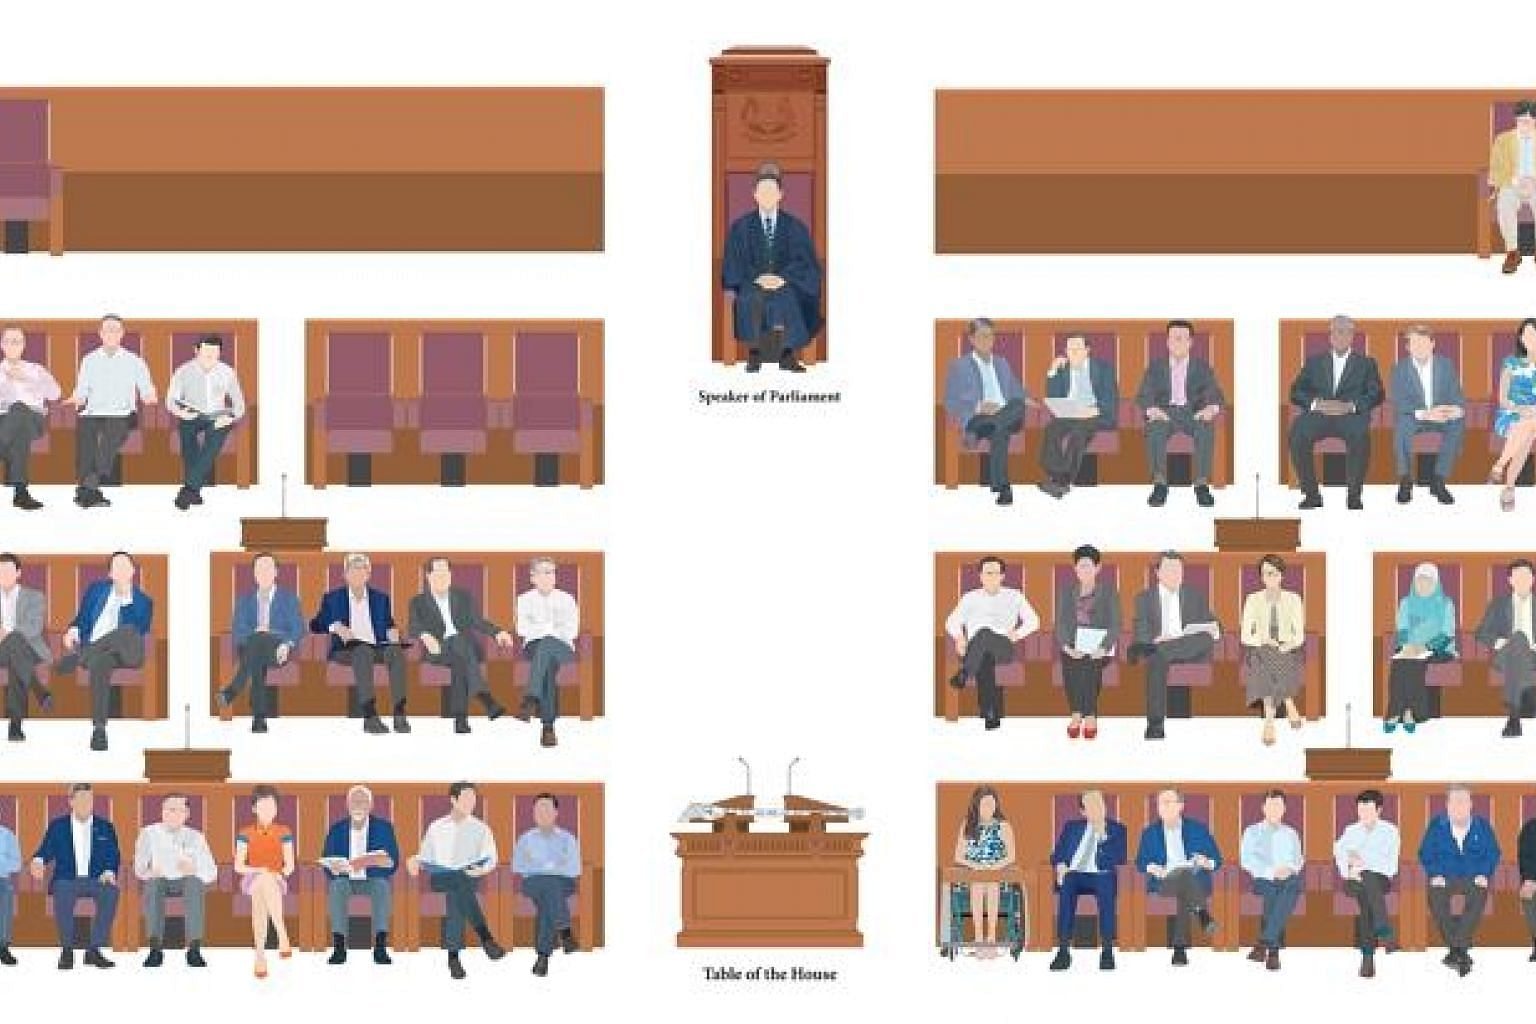 """This illustration of Singapore's parliamentarians does not show anyone's facial features, but """"even without the faces, you can recognise everyone by our characteristic body language and little quirks!"""" said Prime Minister Lee Hsien Loong on his Faceb"""